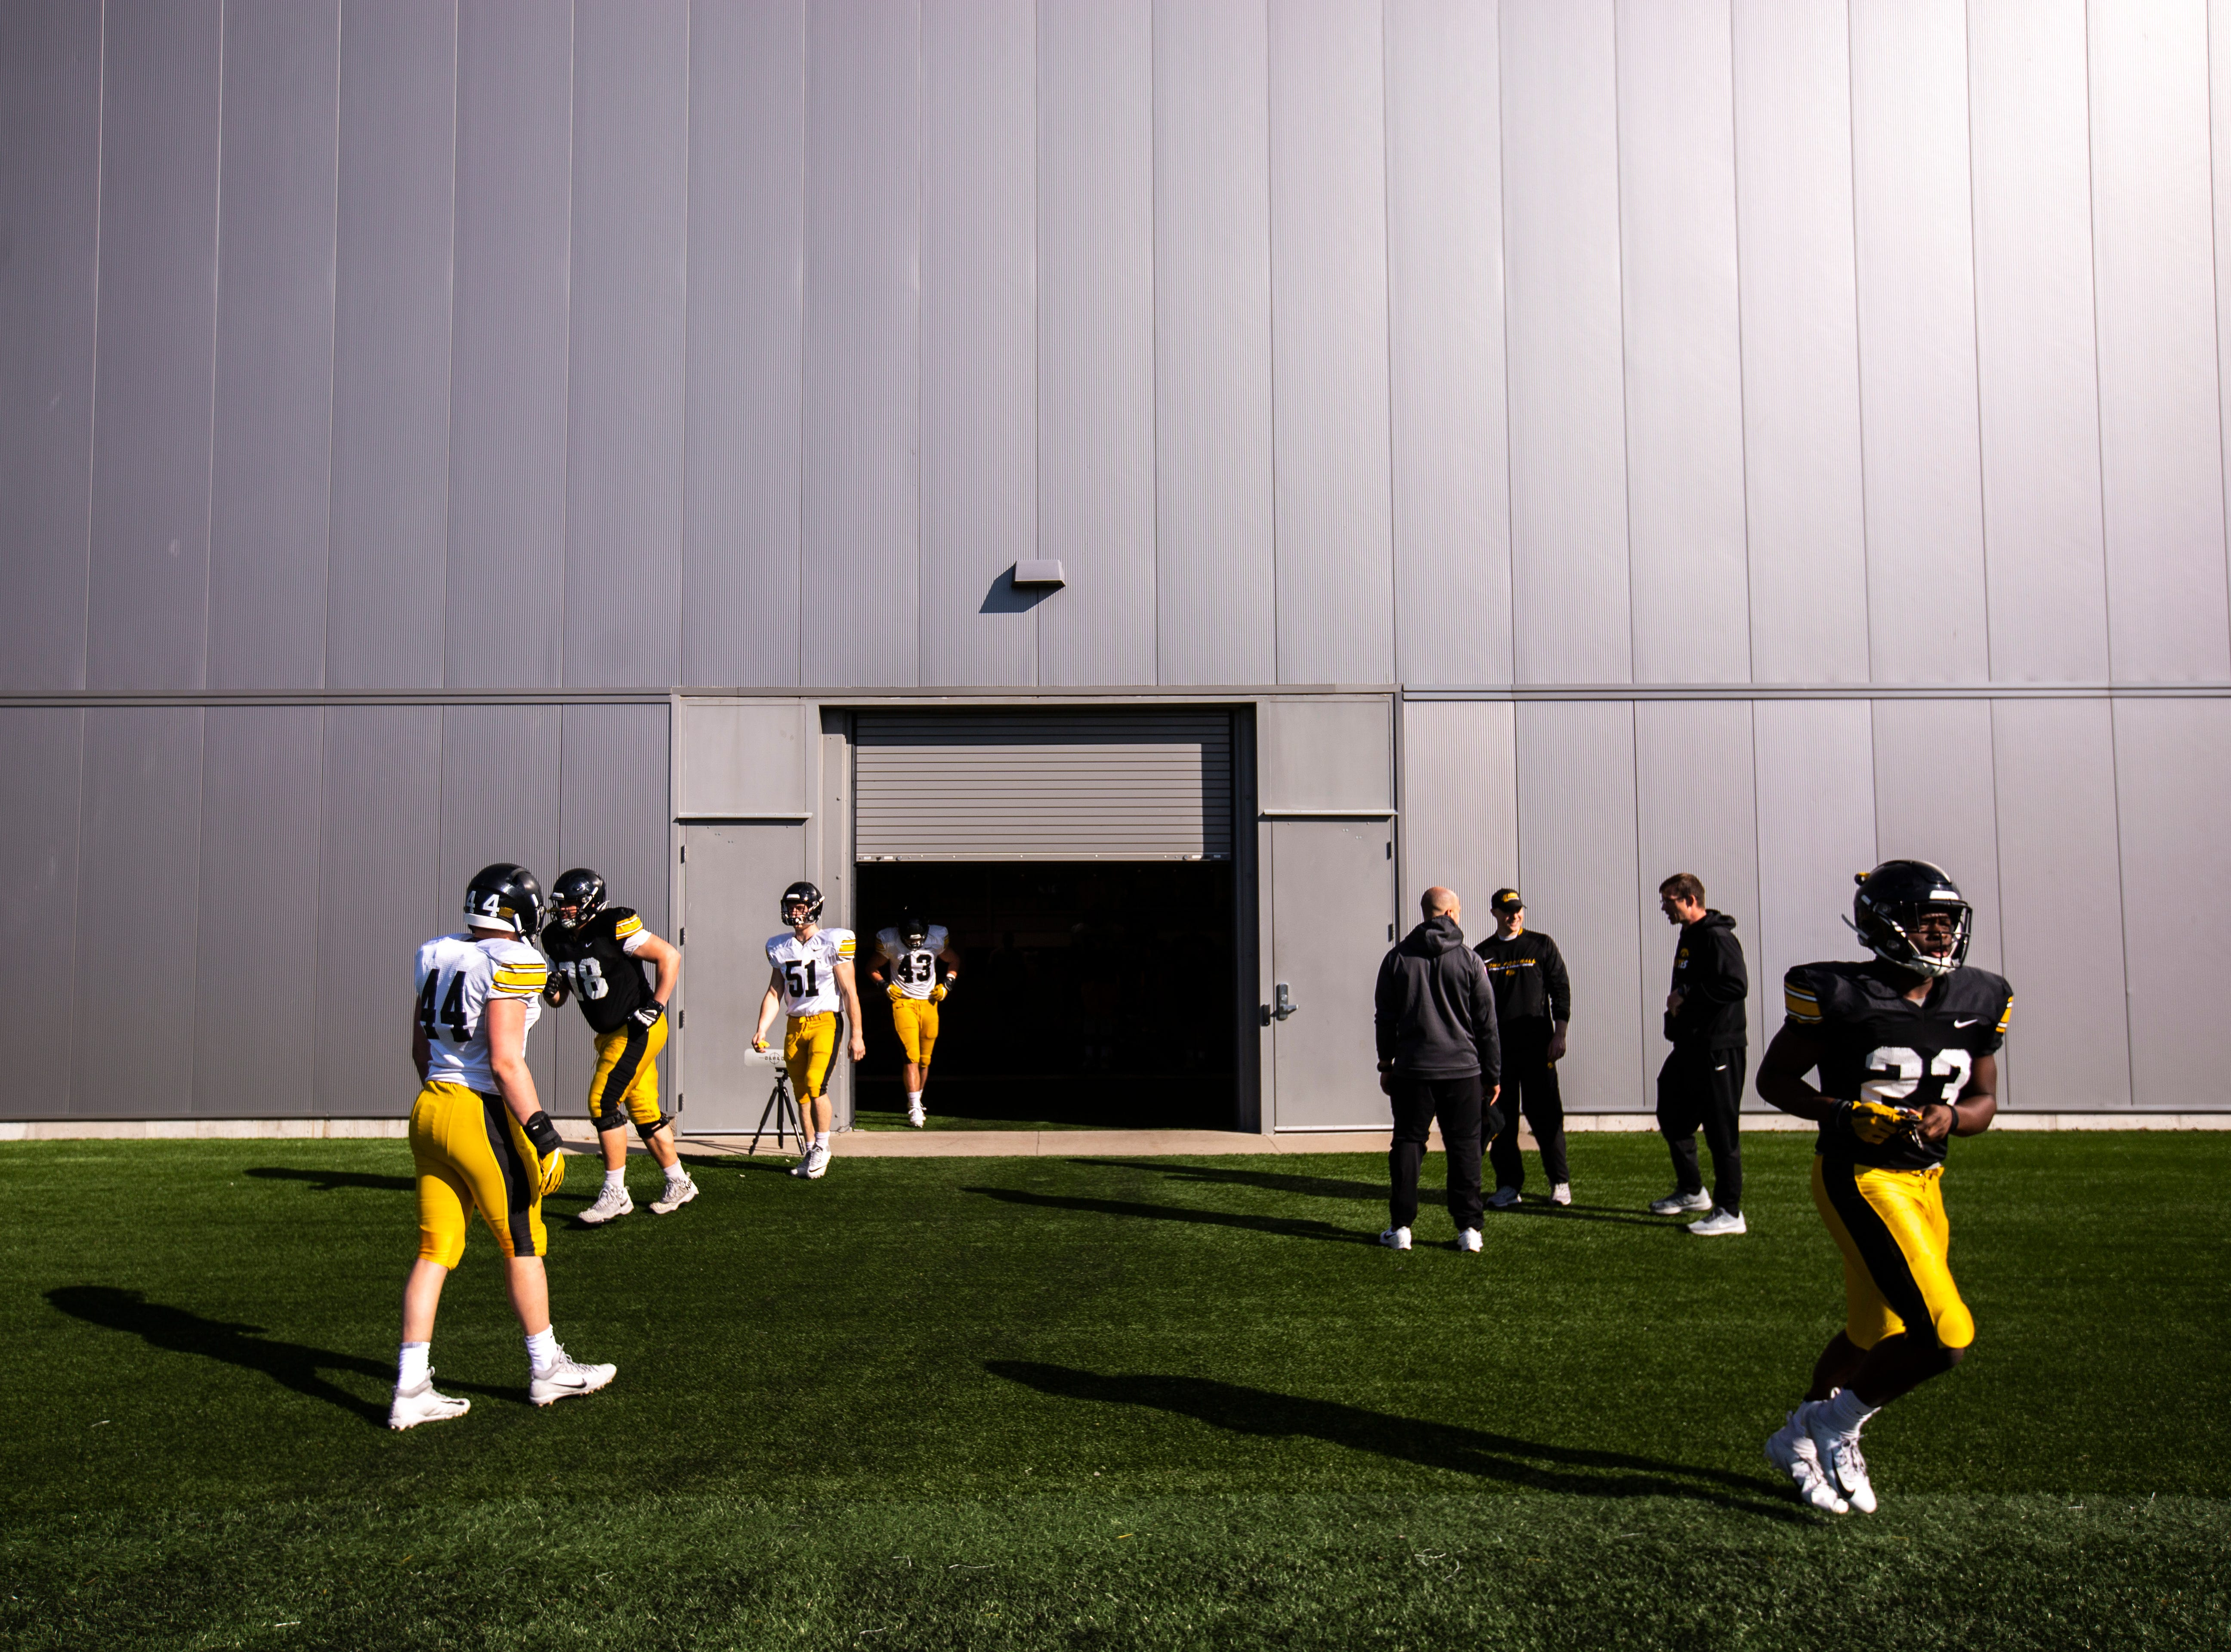 Iowa Hawkeyes players run out of the indoor practice facility before the final spring football practice, Friday, April 26, 2019, at the University of Iowa outdoor practice facility in Iowa City, Iowa.